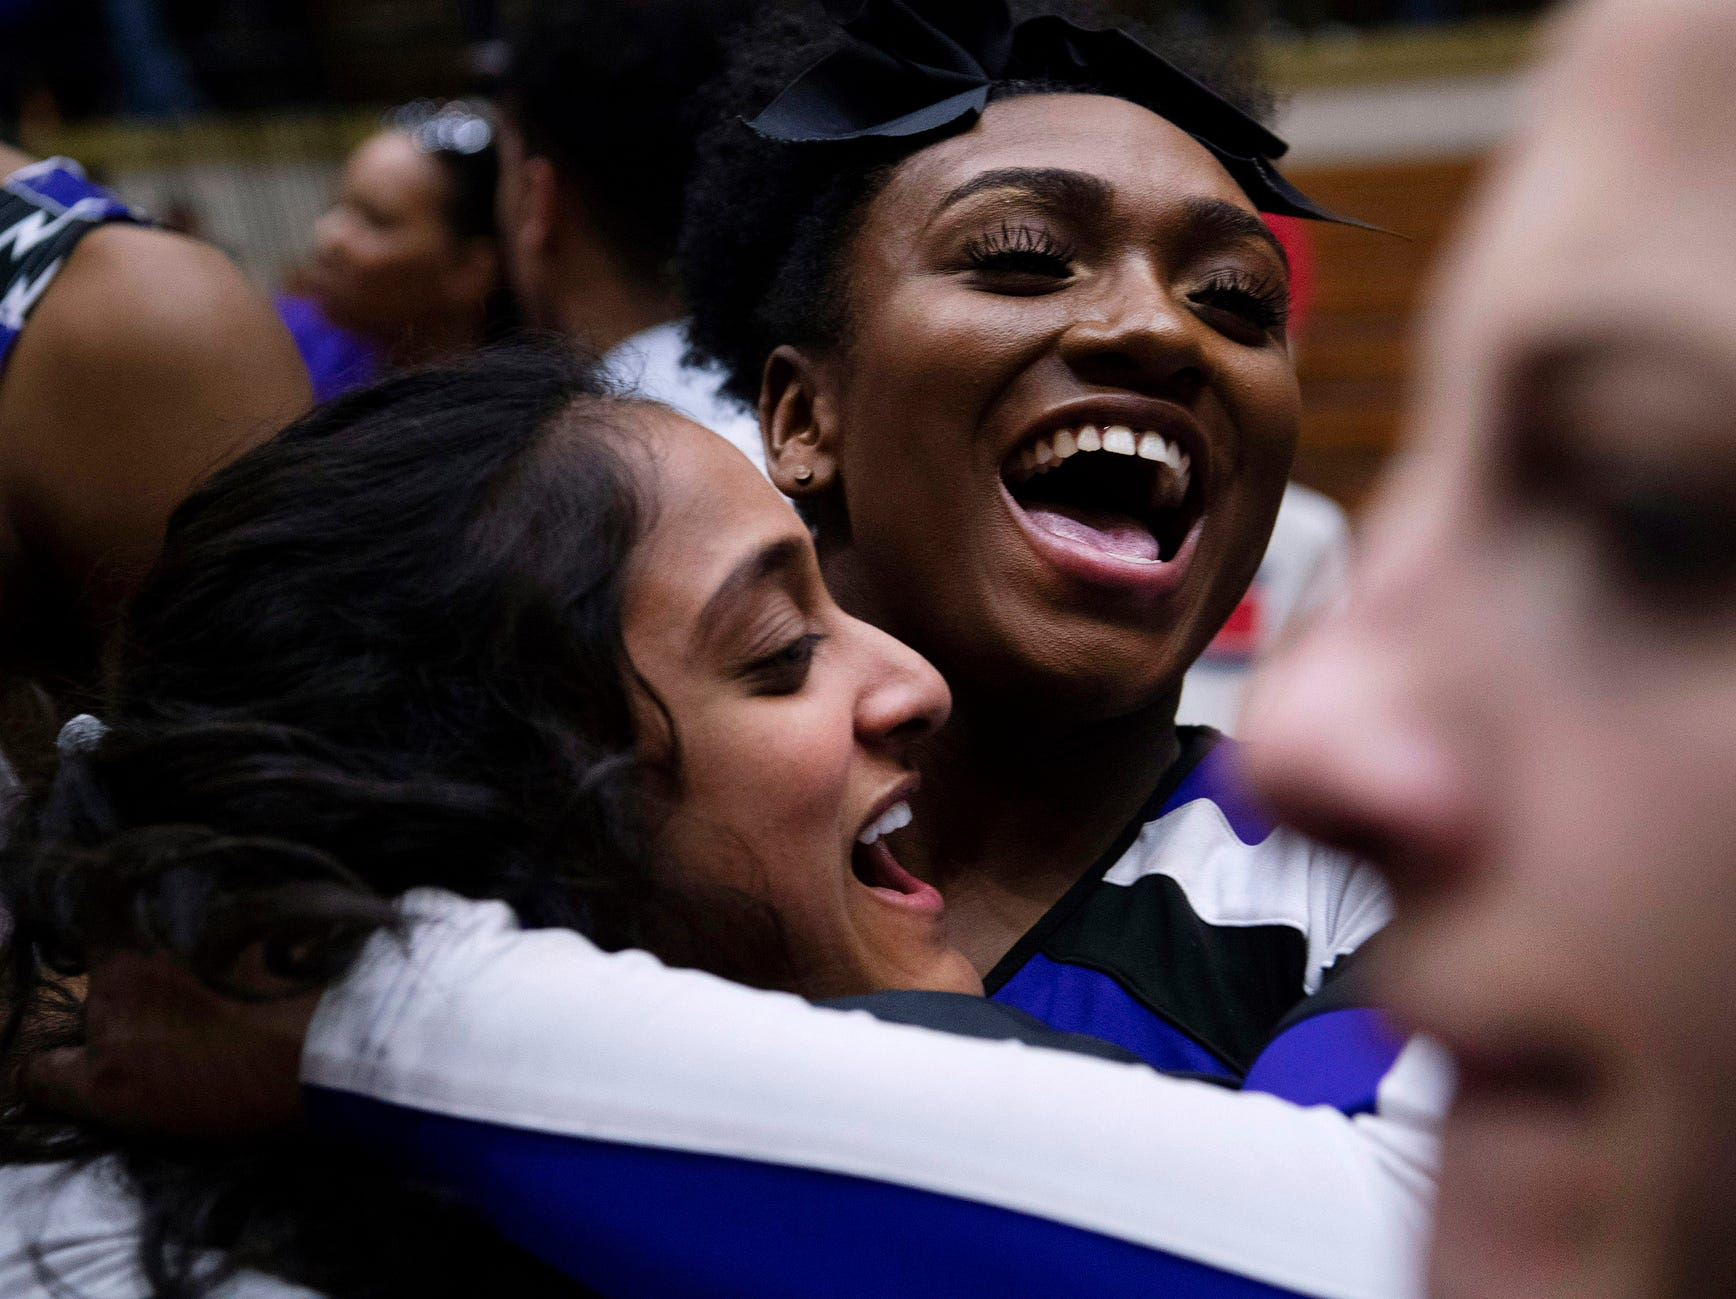 Ben Davis cheerleader Ashley Akin, top, celebrates with the students on the court after beating Center Grove in the 4A Boys Indiana Semi-State Basketball Tournament at the Hatchet House in Washington, Ind., Saturday afternoon, March 16, 2019. Ben Davis beat Central Grove to advance to next week's state championship.